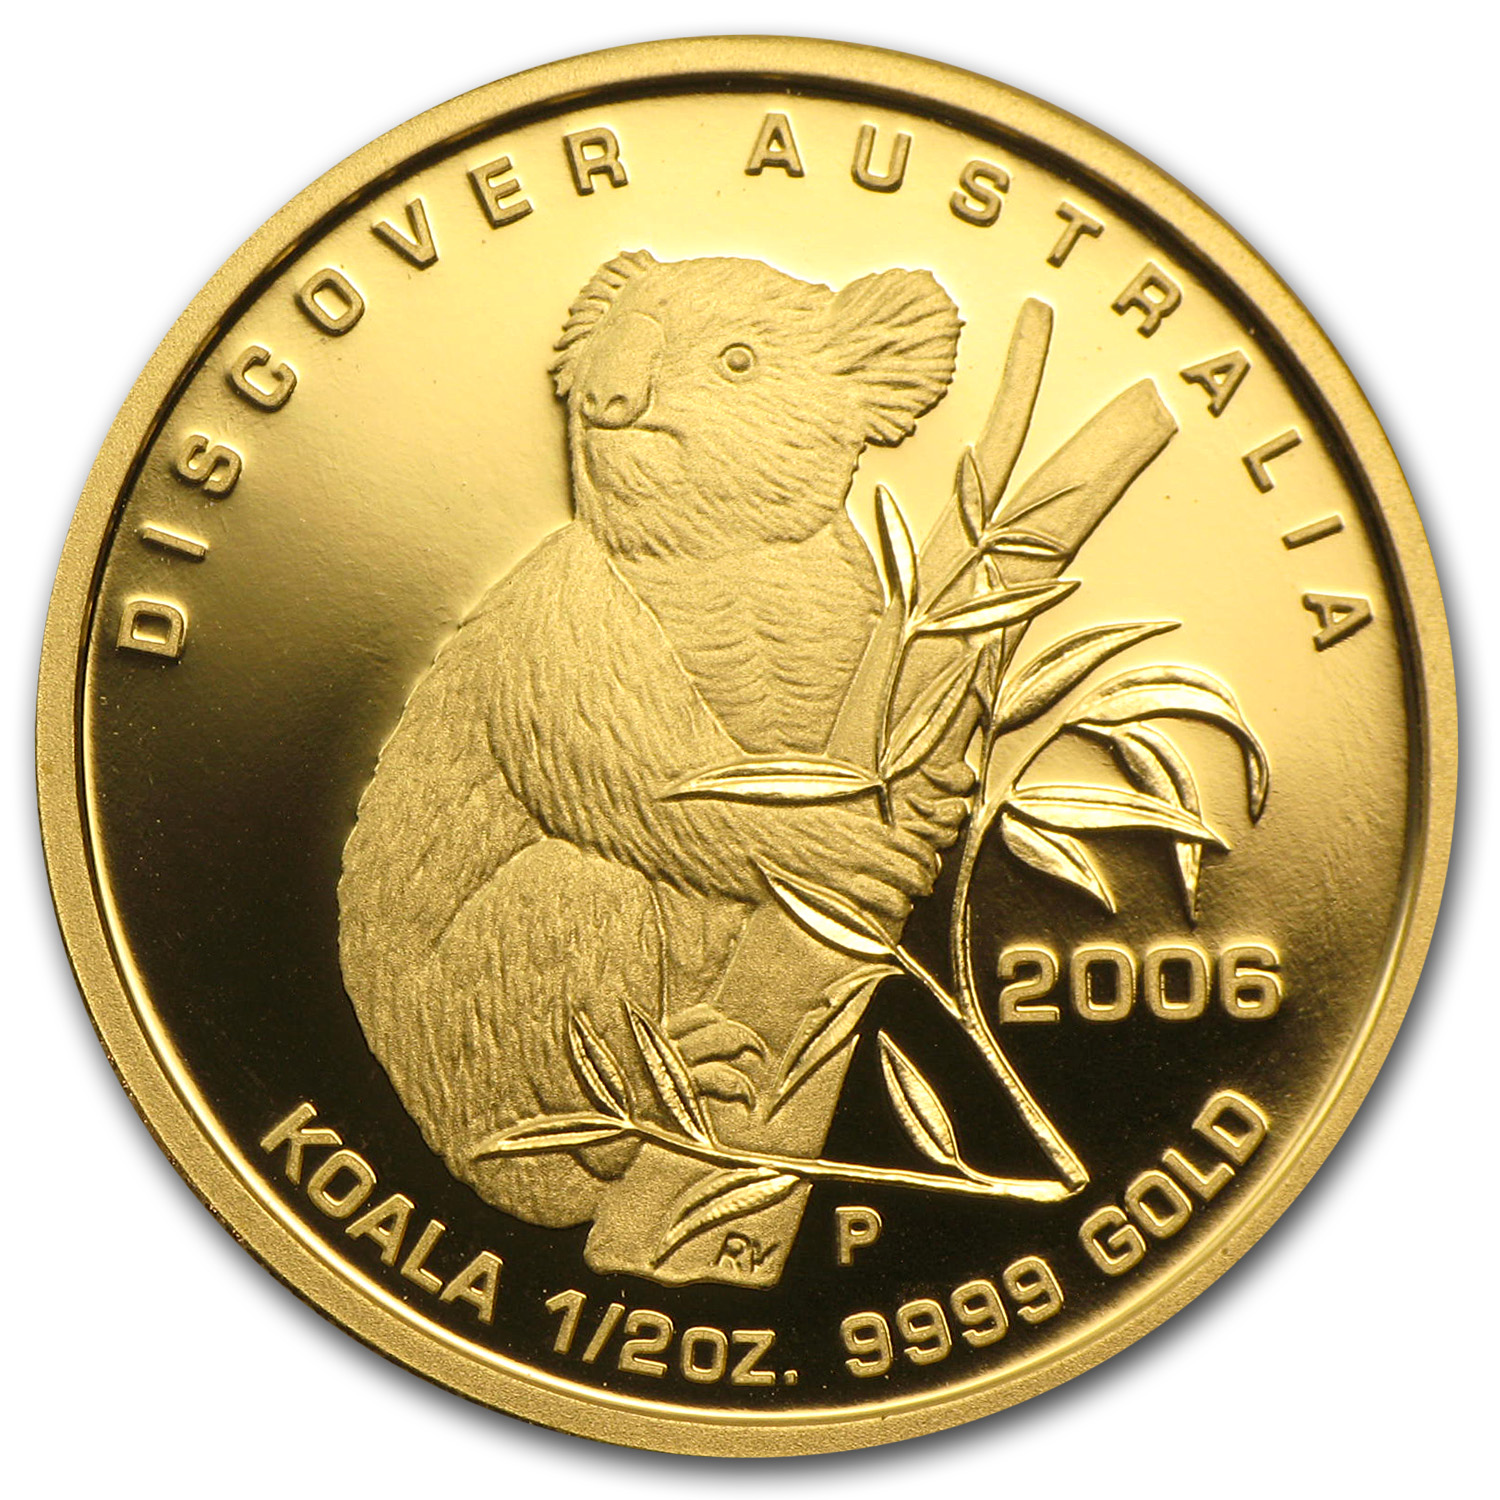 2006 1/2 oz Proof Gold Discover Australia Koala (In Capsule)